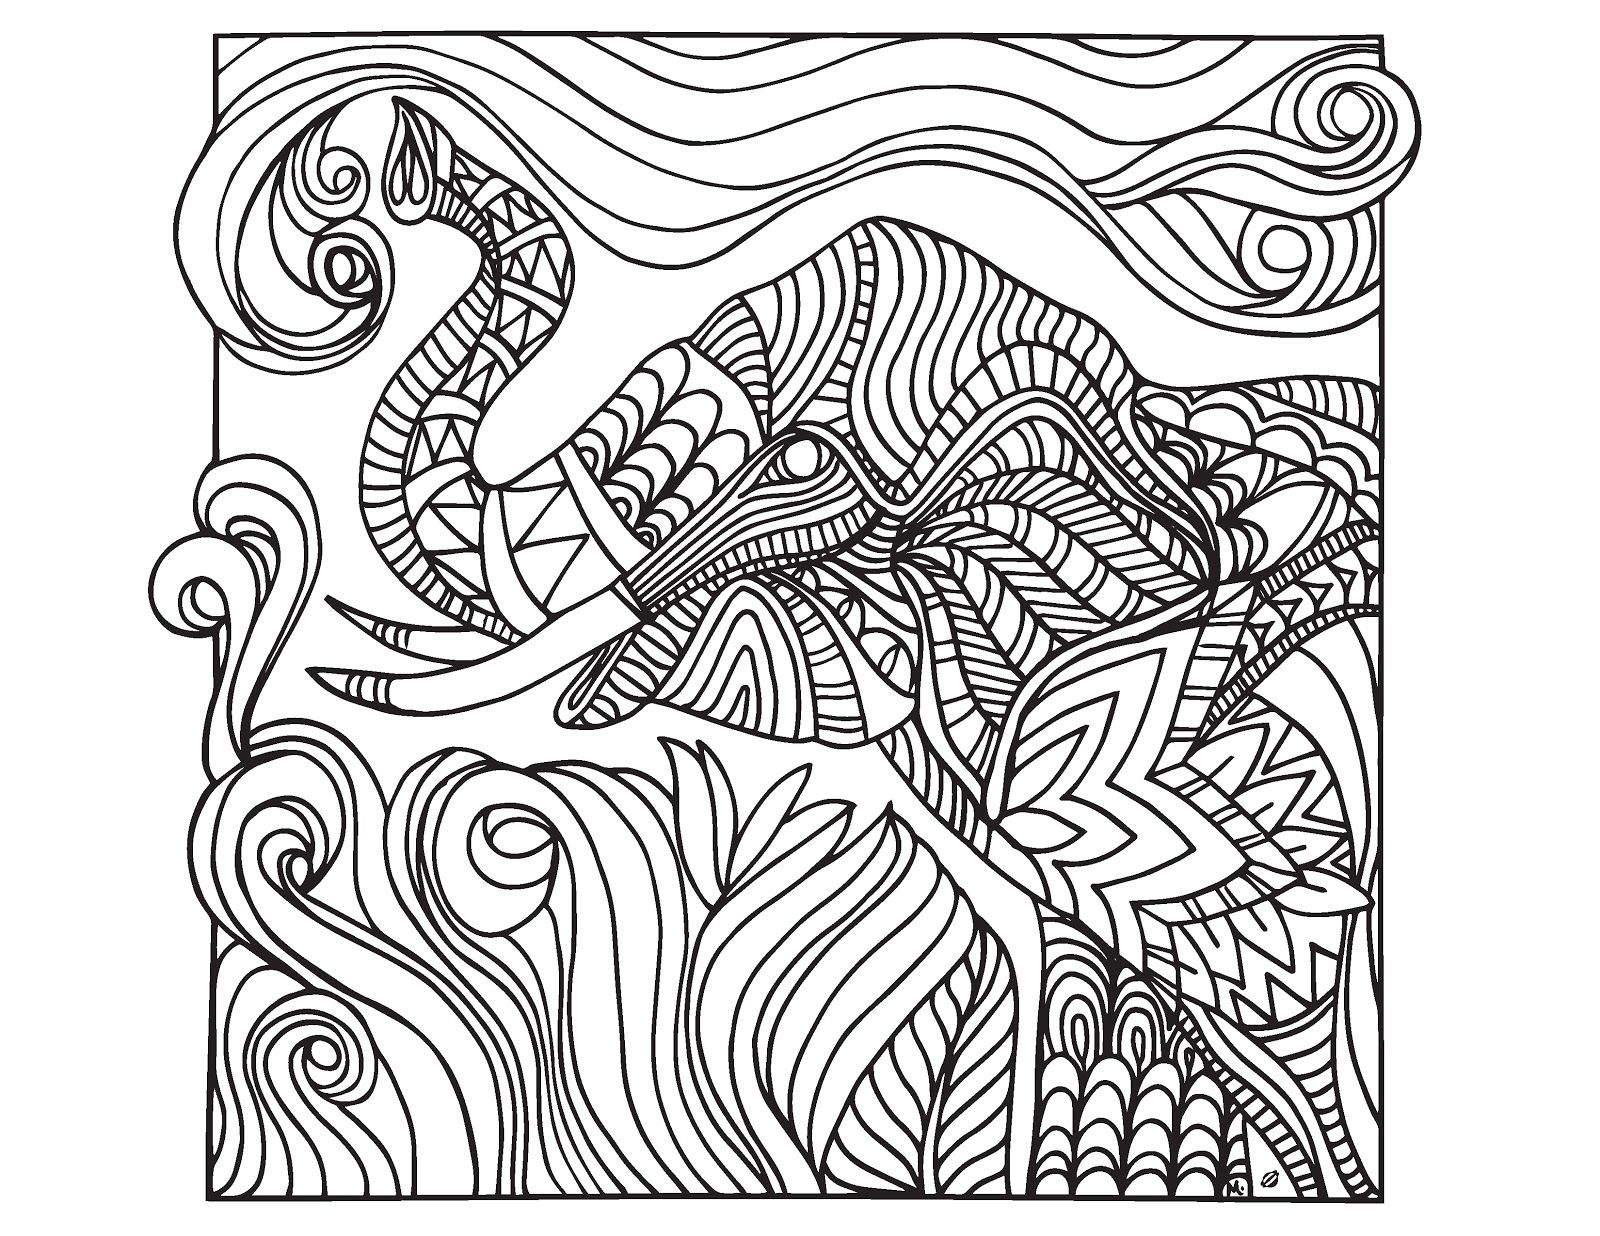 Free printable coloring pages for grown ups - Difficult Abstract Elephant Coloring Pages For Adults Abstract Elephant Coloring Pages For Adults Coloring Tone